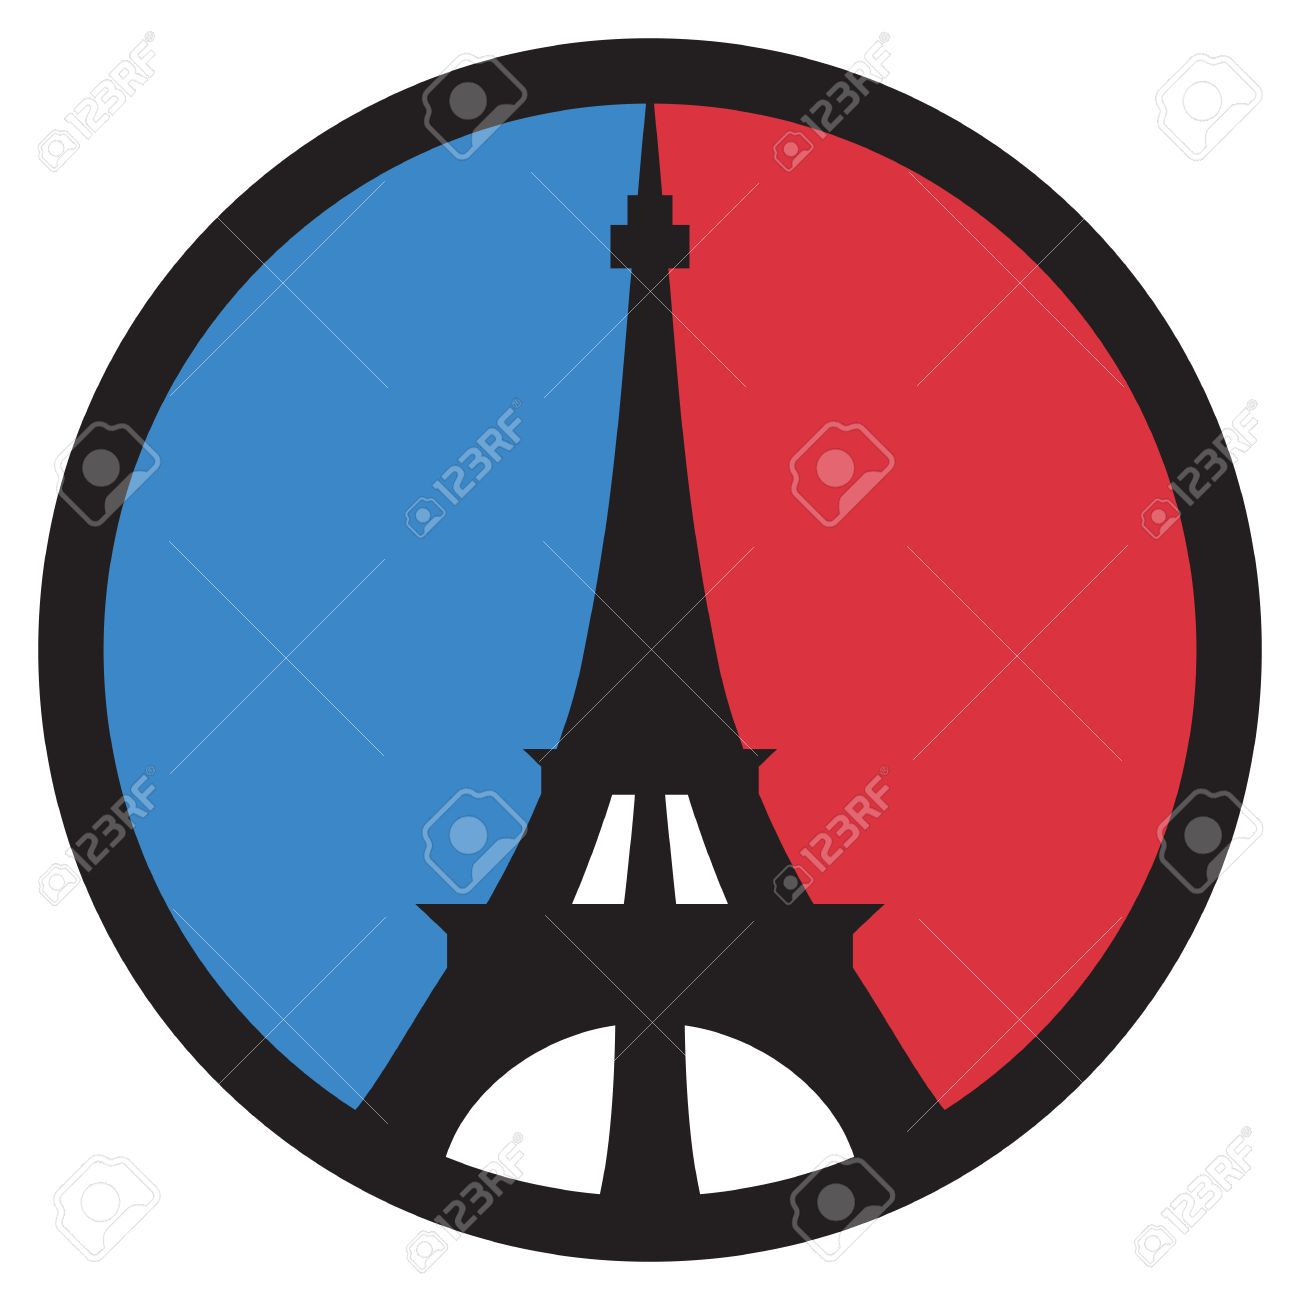 Eiffel tower peace symbol in the colors of the french flag eiffel tower peace symbol in the colors of the french flag stock vector 58109179 biocorpaavc